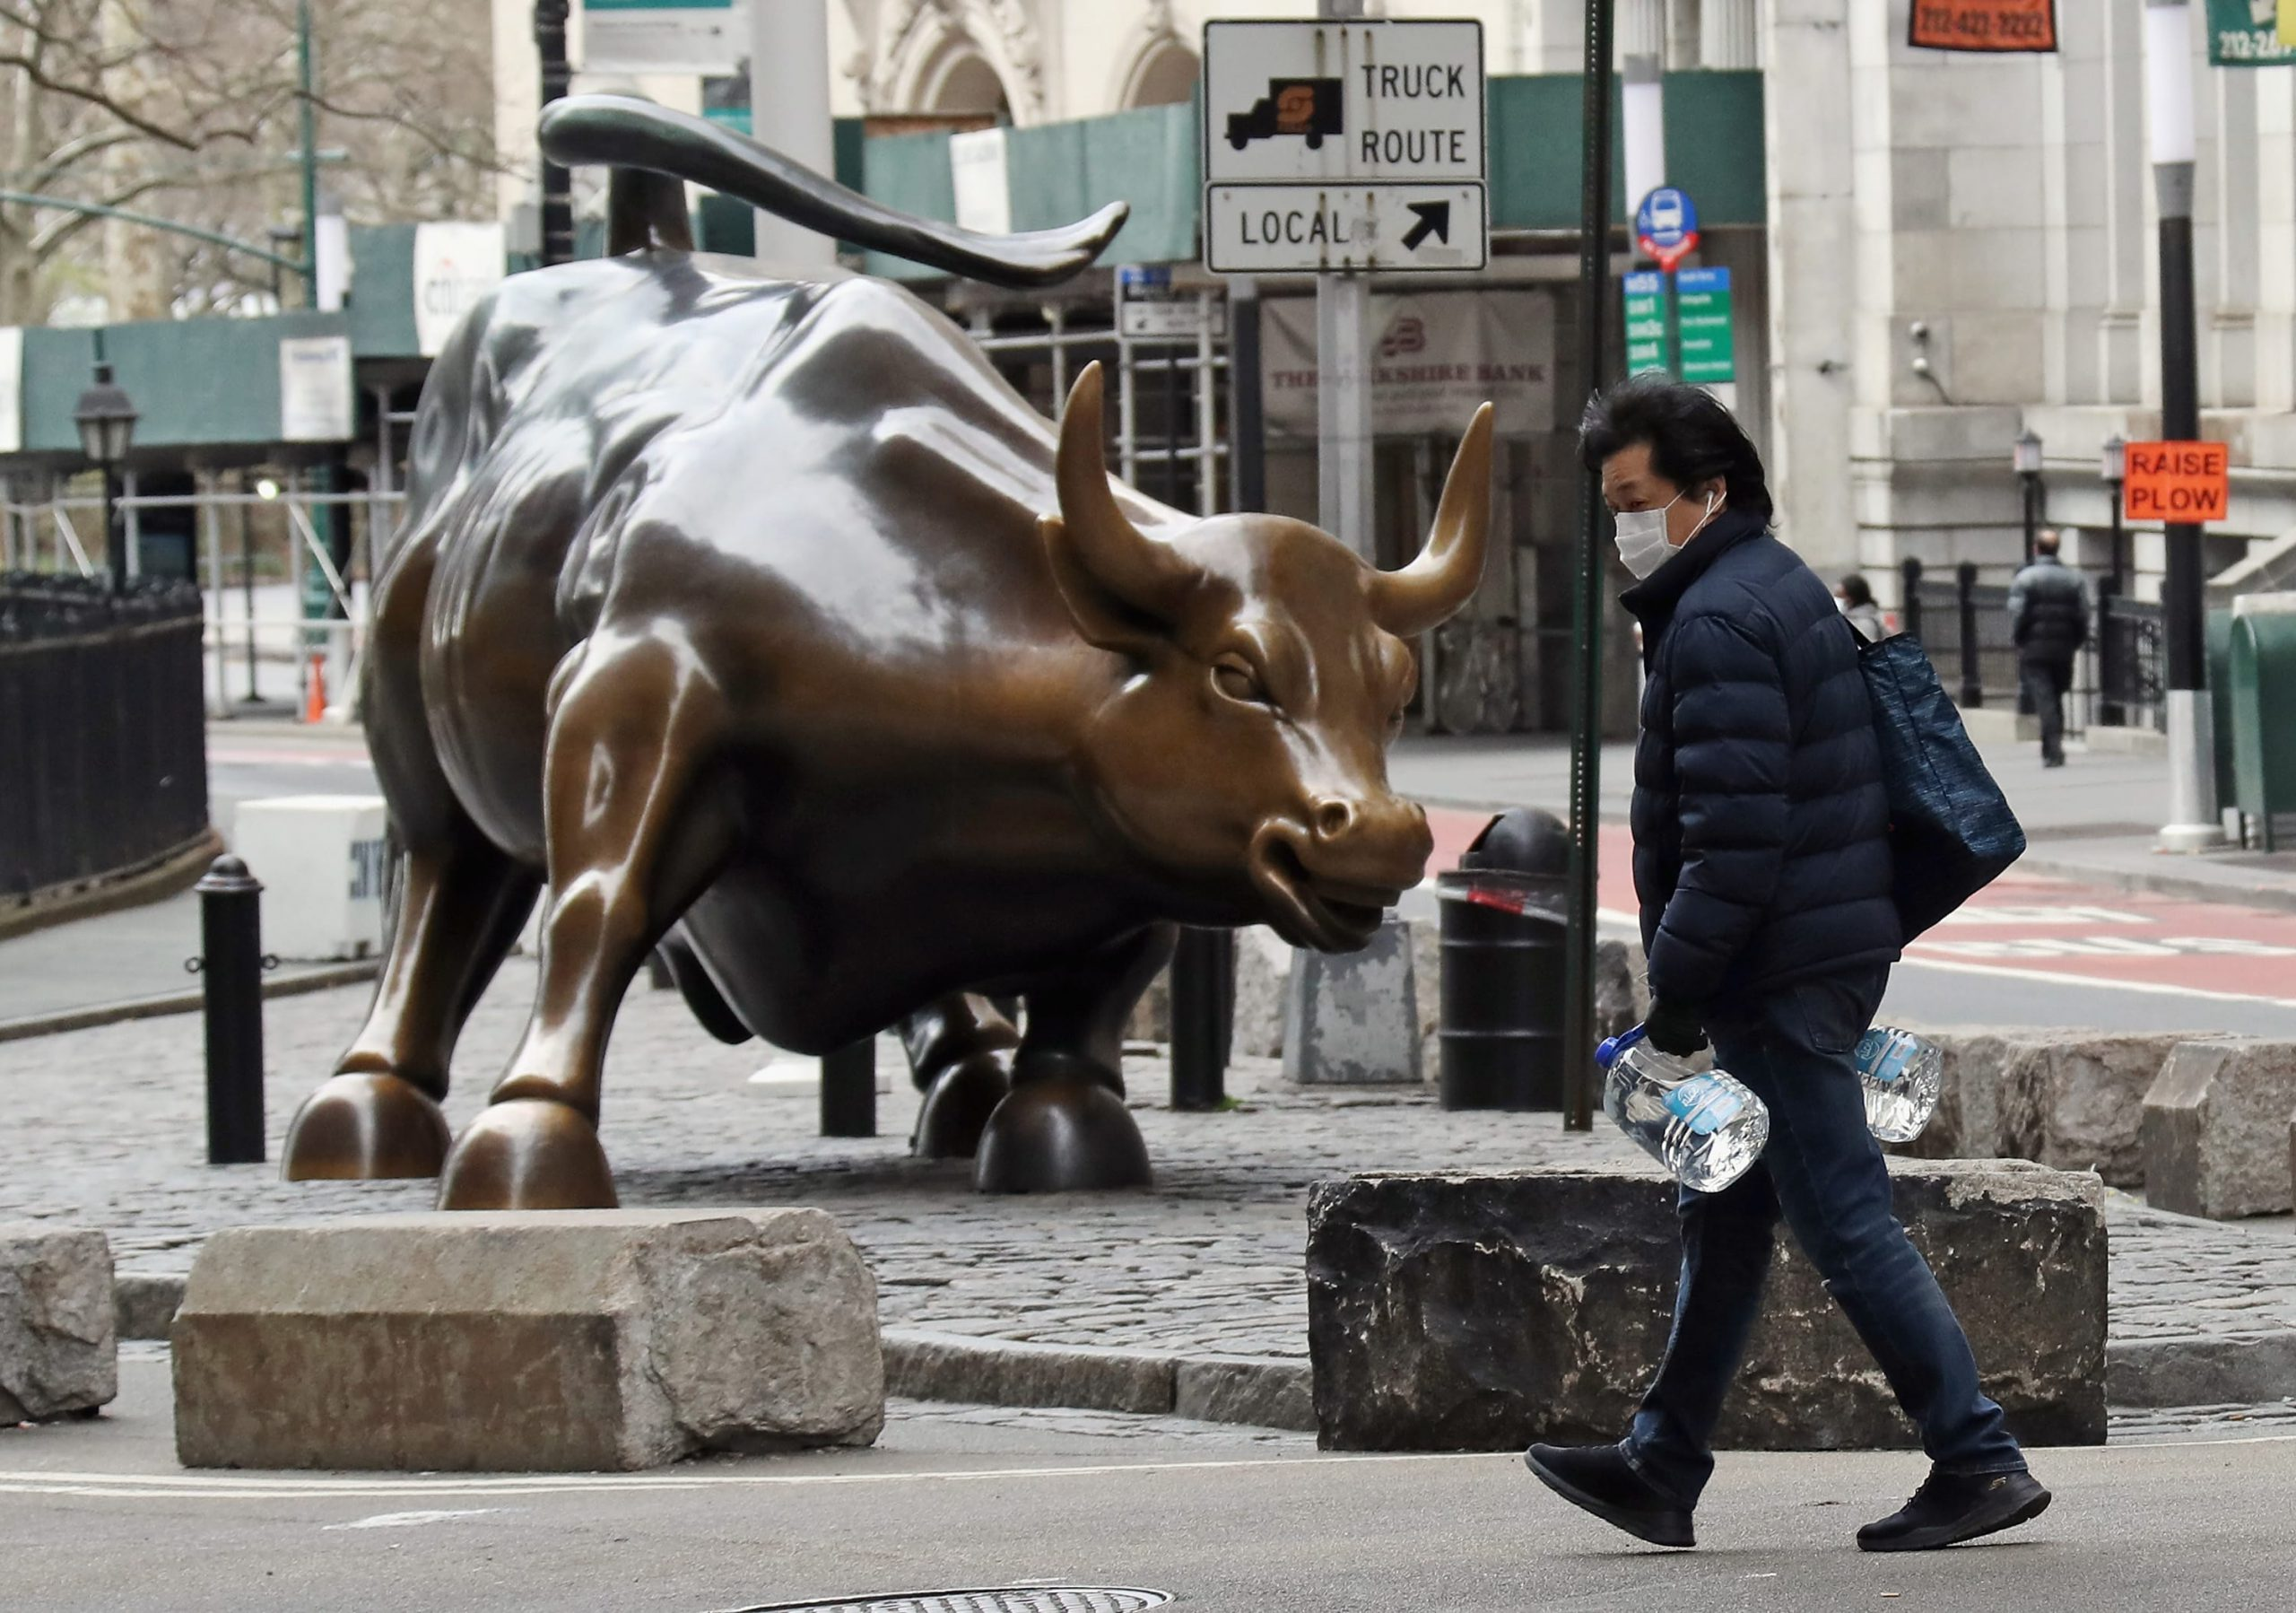 Stock market live updates: Dow futures up 300, hopes of reopening build, oil down again